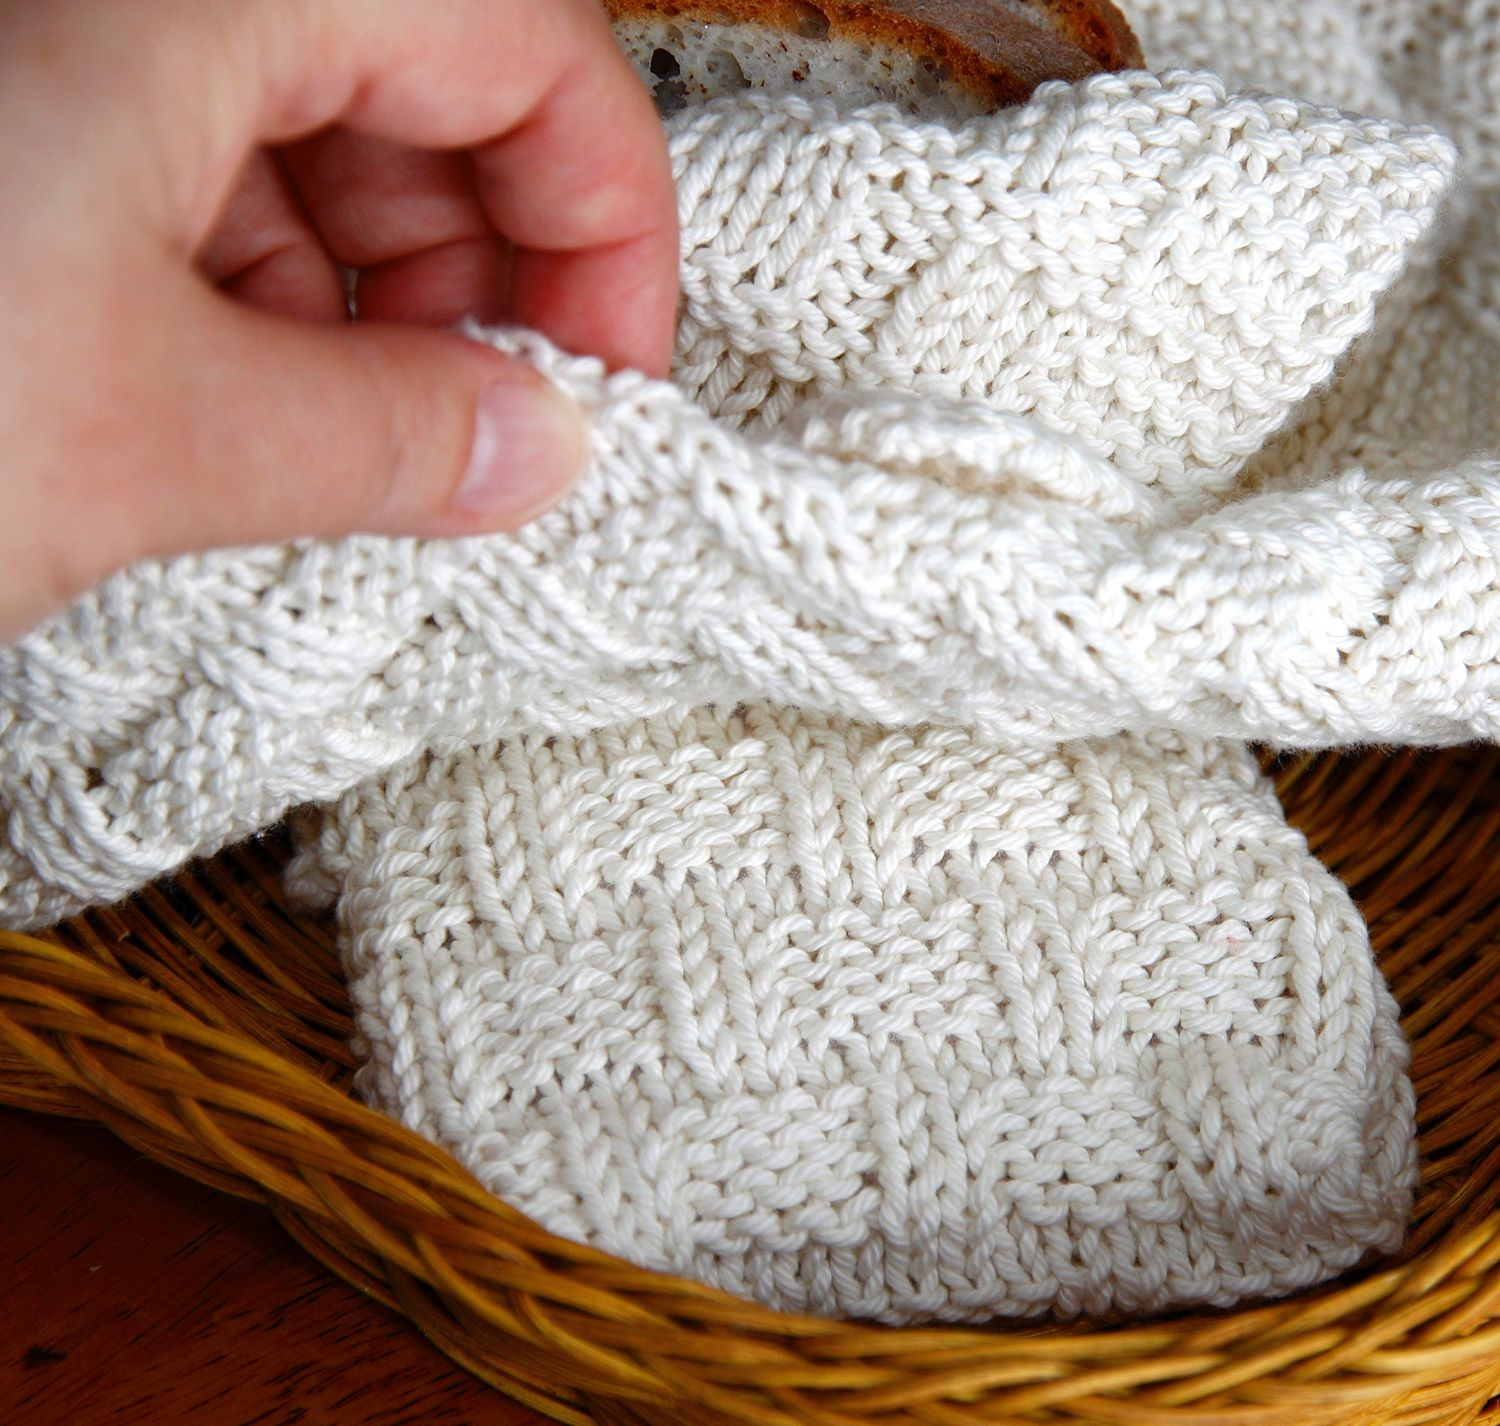 At Home Dining: Bread Basket Cloth & Warming Companion ...